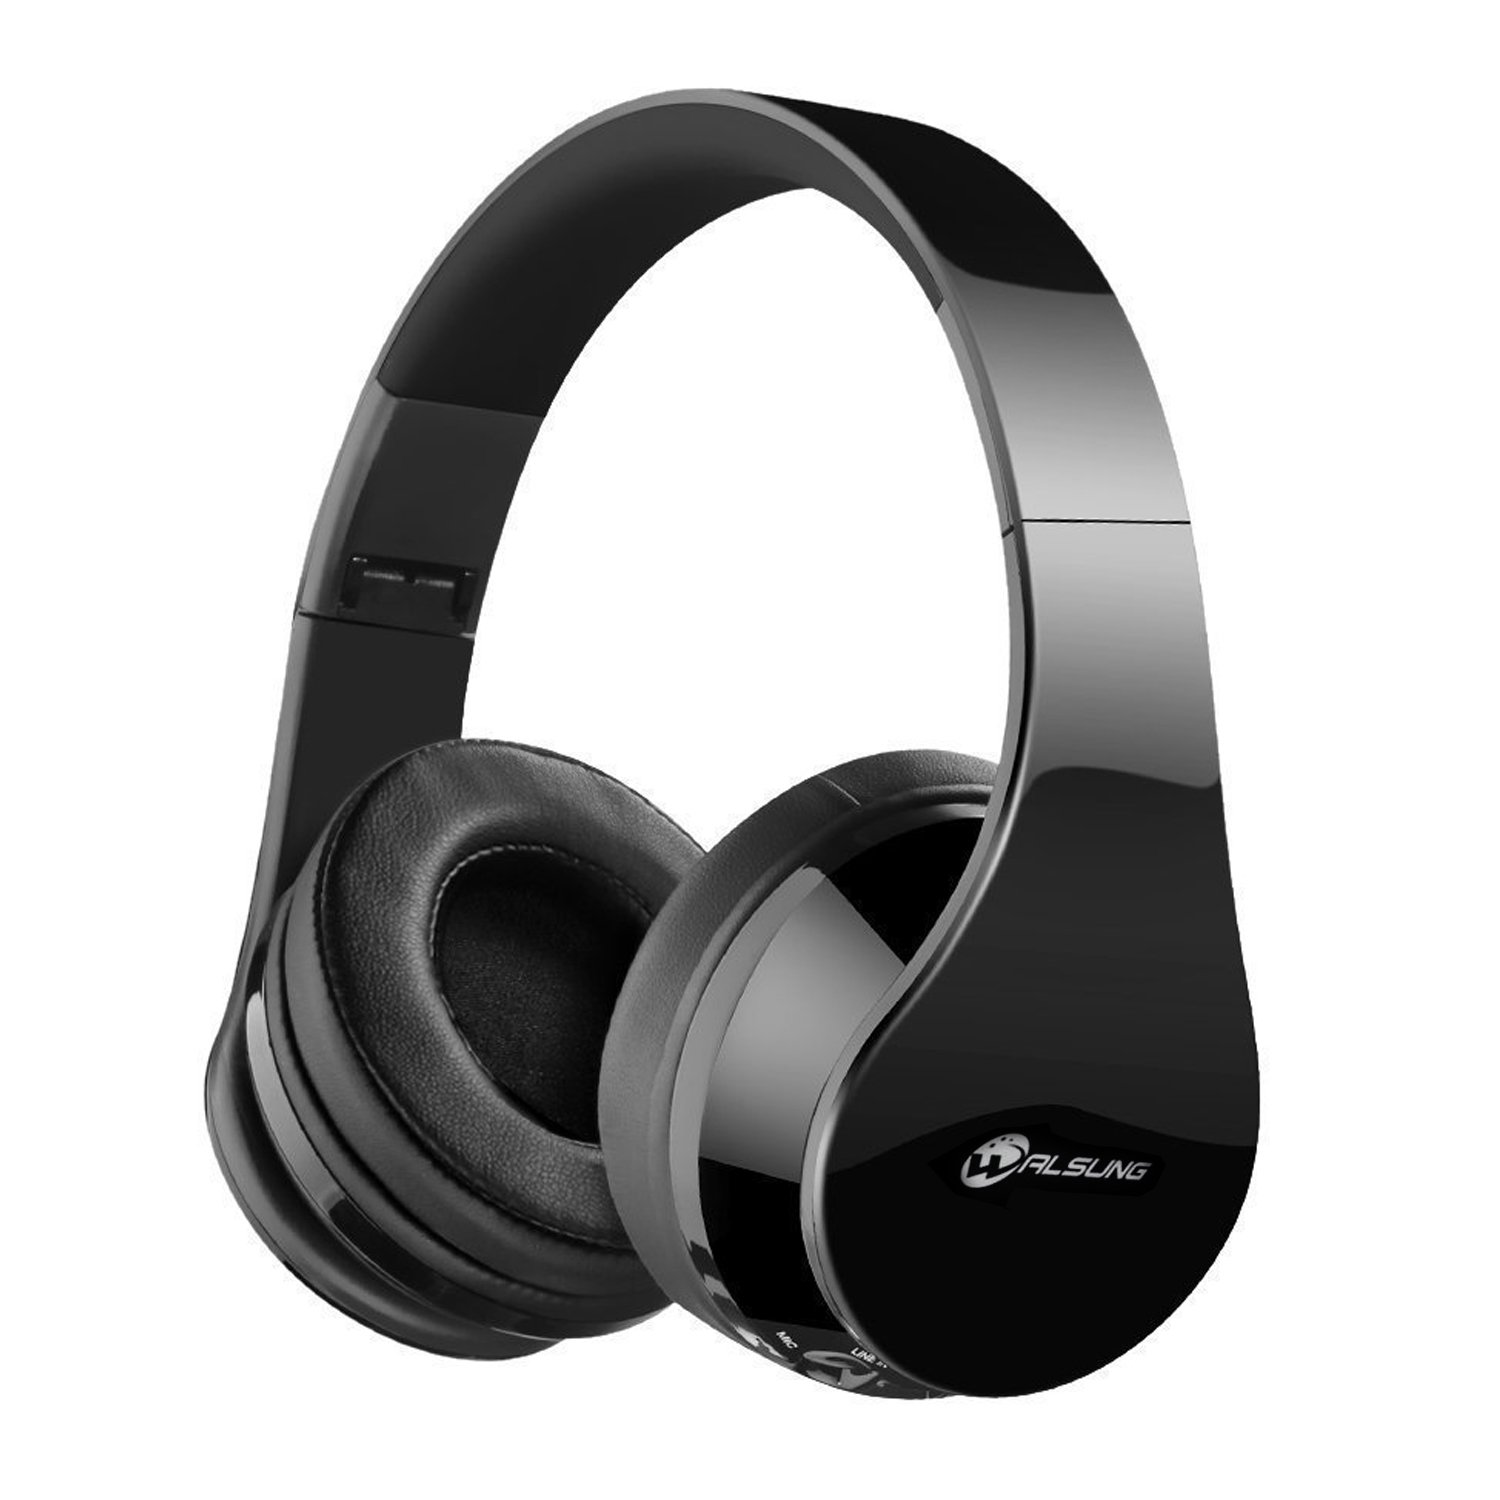 Walsung Bluetooth Headphones Over-ear Stereo Wireless / Wired Headset with Microphone Support TF Card, FM Radio, Hands-free Calling for Cell Phone, PC, Moto, iPad, PSP, iPhone 8, iPhone X (Black)